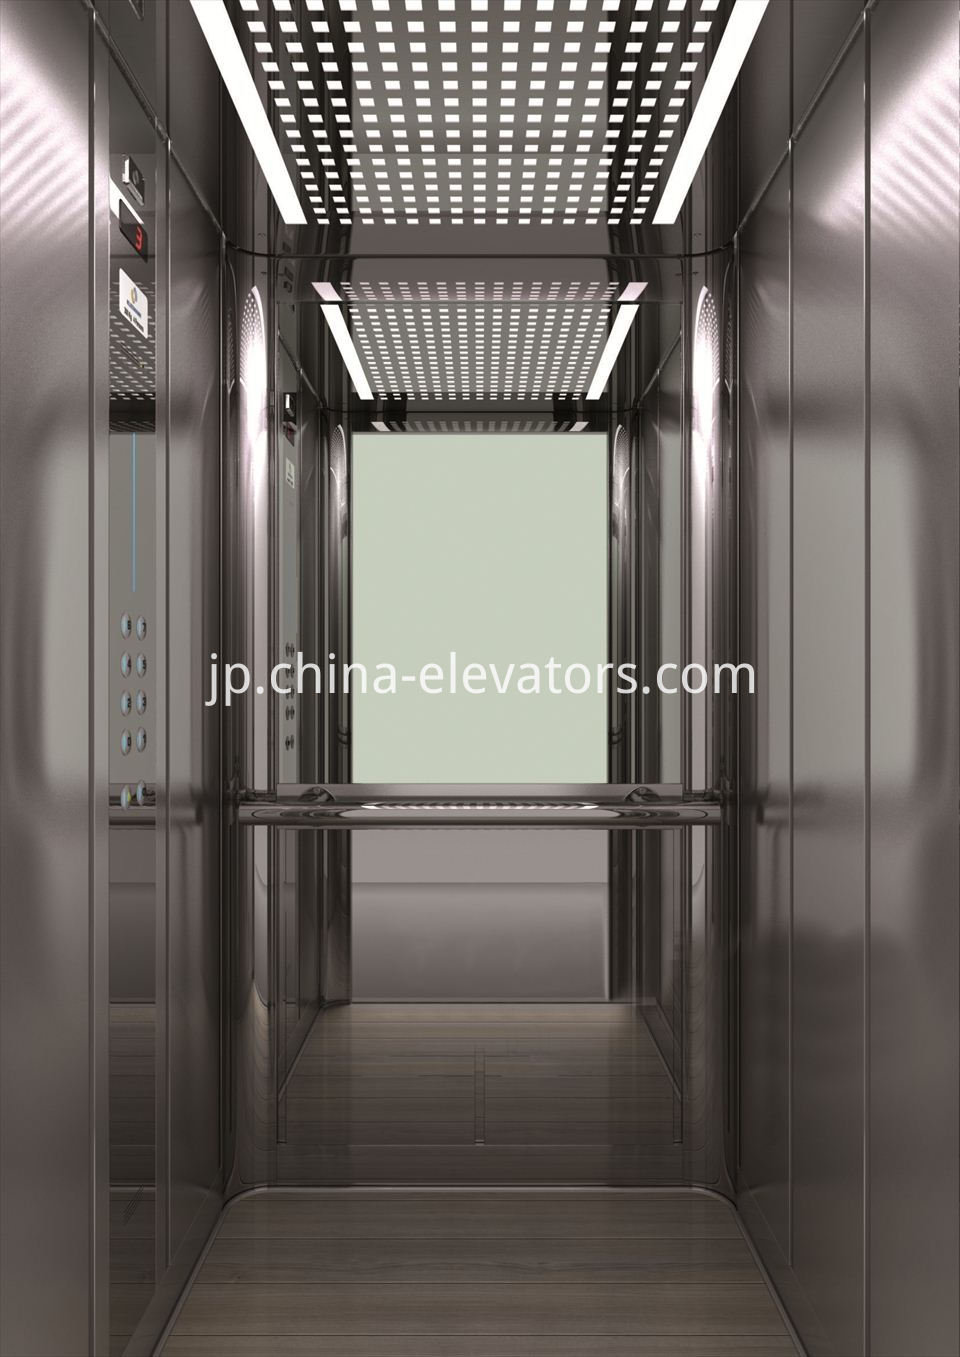 Elevator Cabin Modernization | Replacement